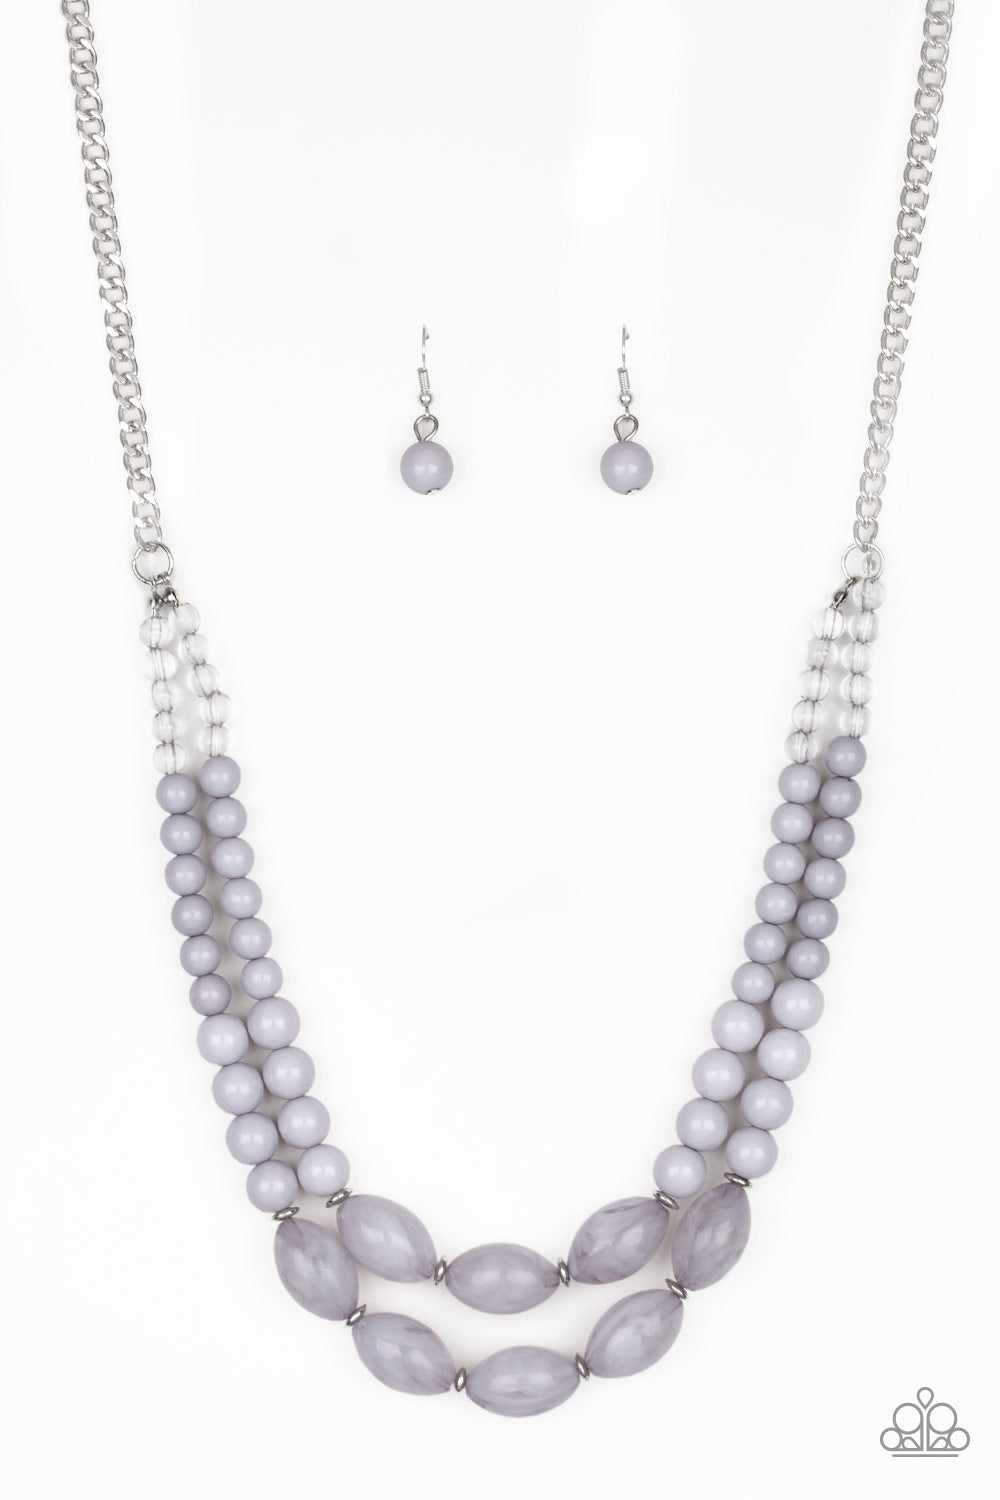 Paparazzi Accessories - Sundae Shoppe - Silver Necklace Set - JMJ Jewelry Collection